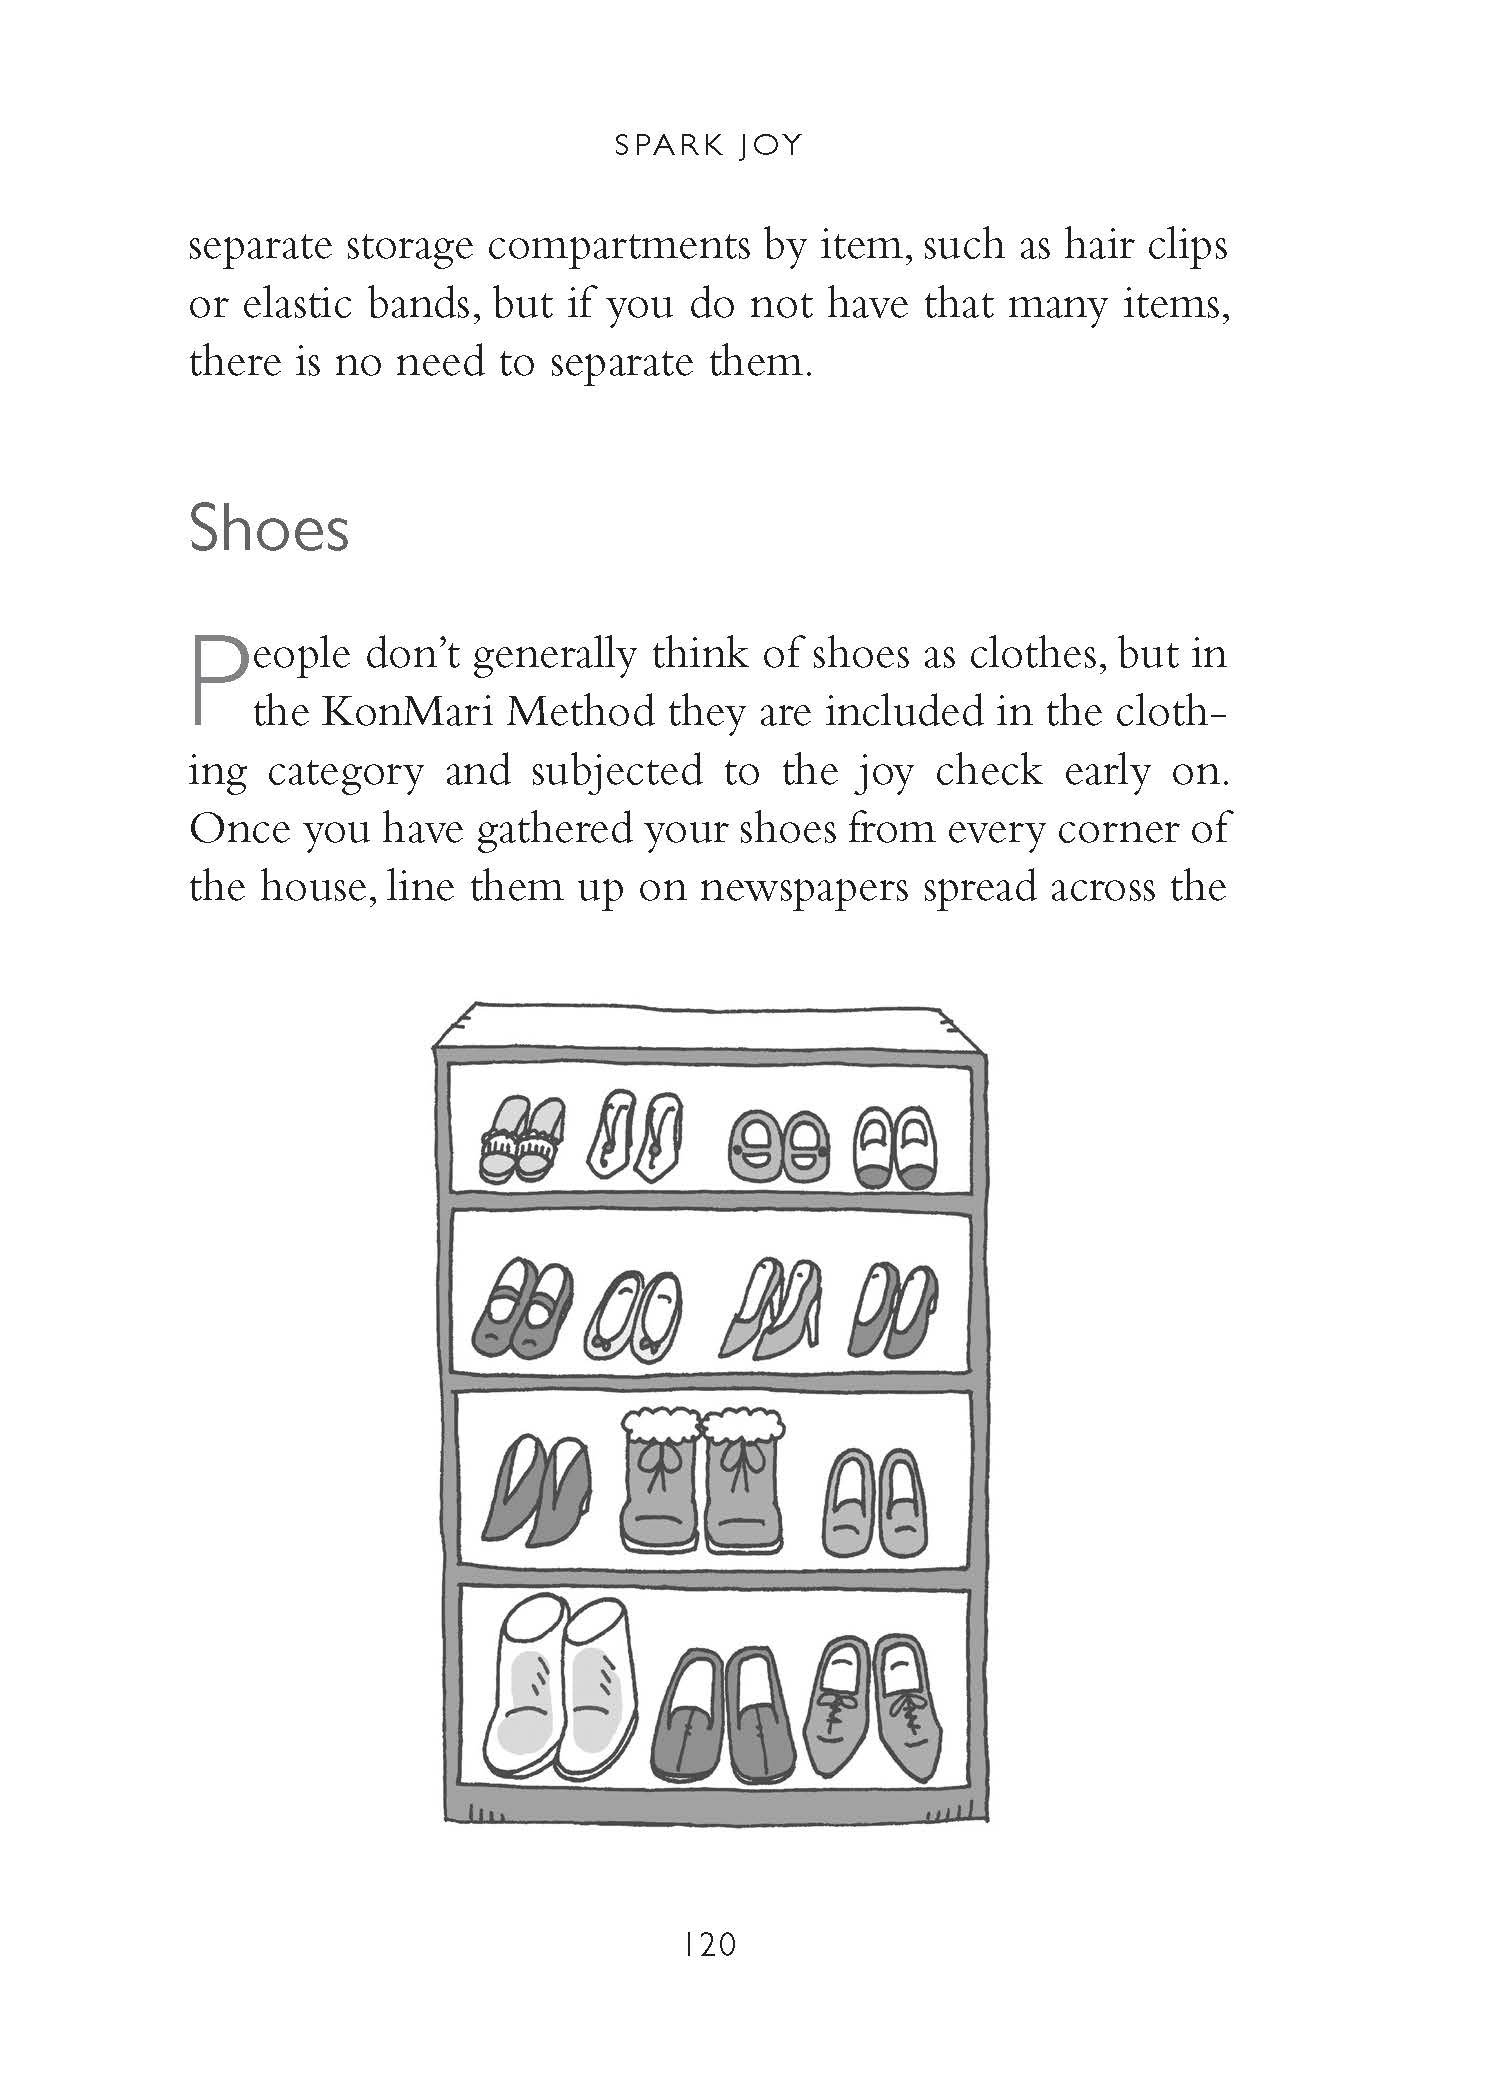 Marie Kondo Spark Joy Ebook